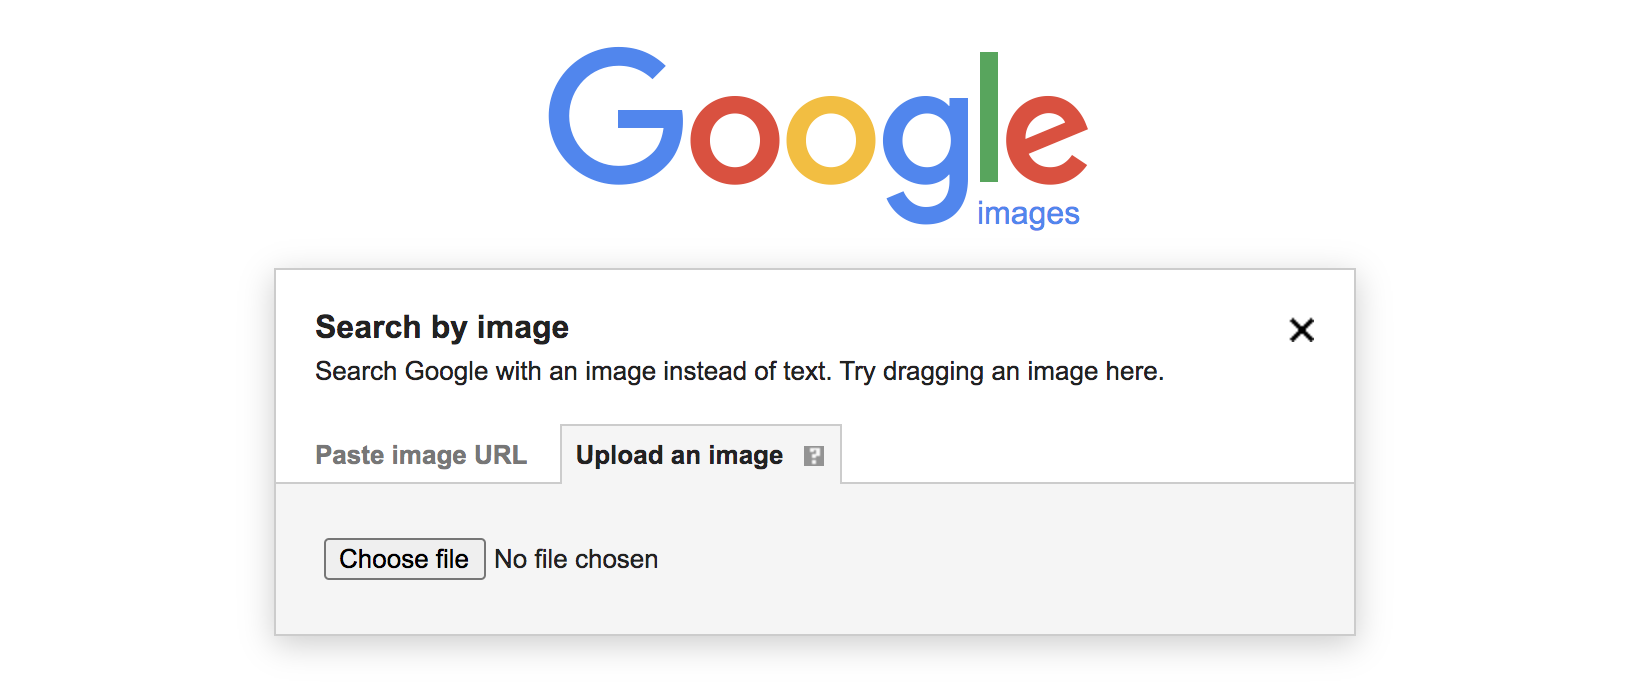 image upload search option on Google